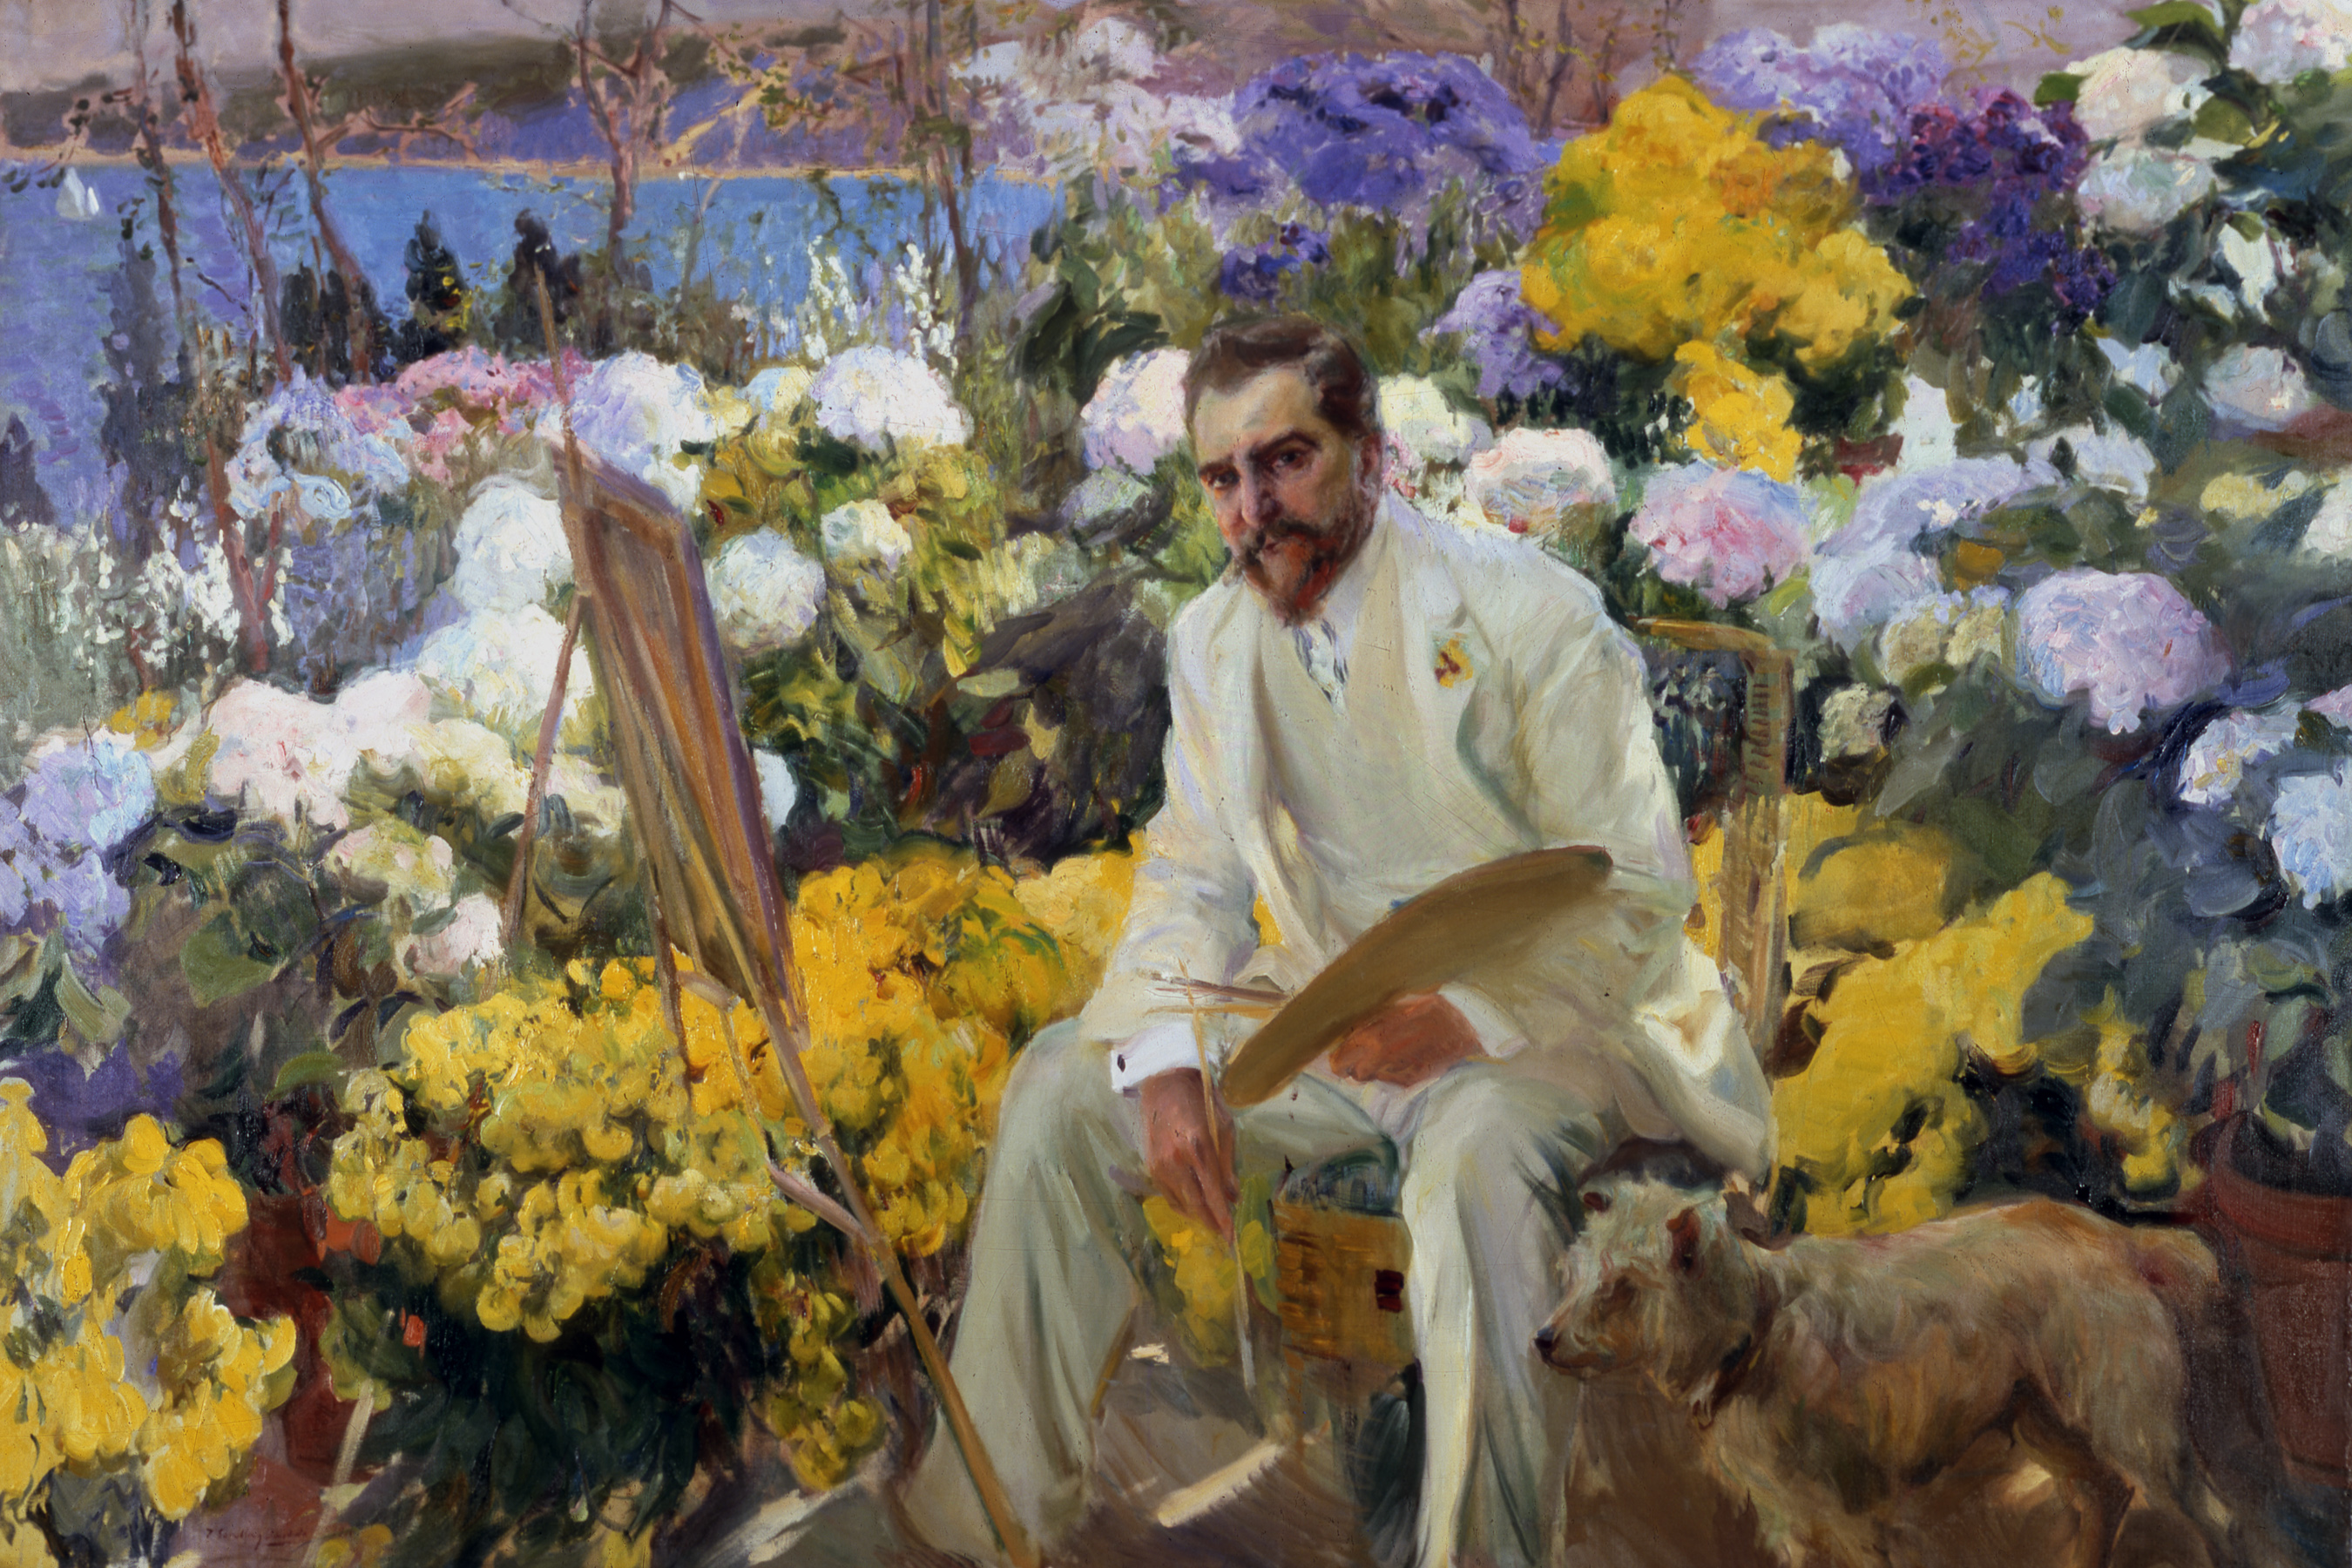 Louis Comfort Tiffany - Joaquín Sorolla y Bastida (Spanish, 1863-1923), Portrait of Louis Comfort Tiffany, 1911, oil on canvas. The Hispanic Society of America, A3182